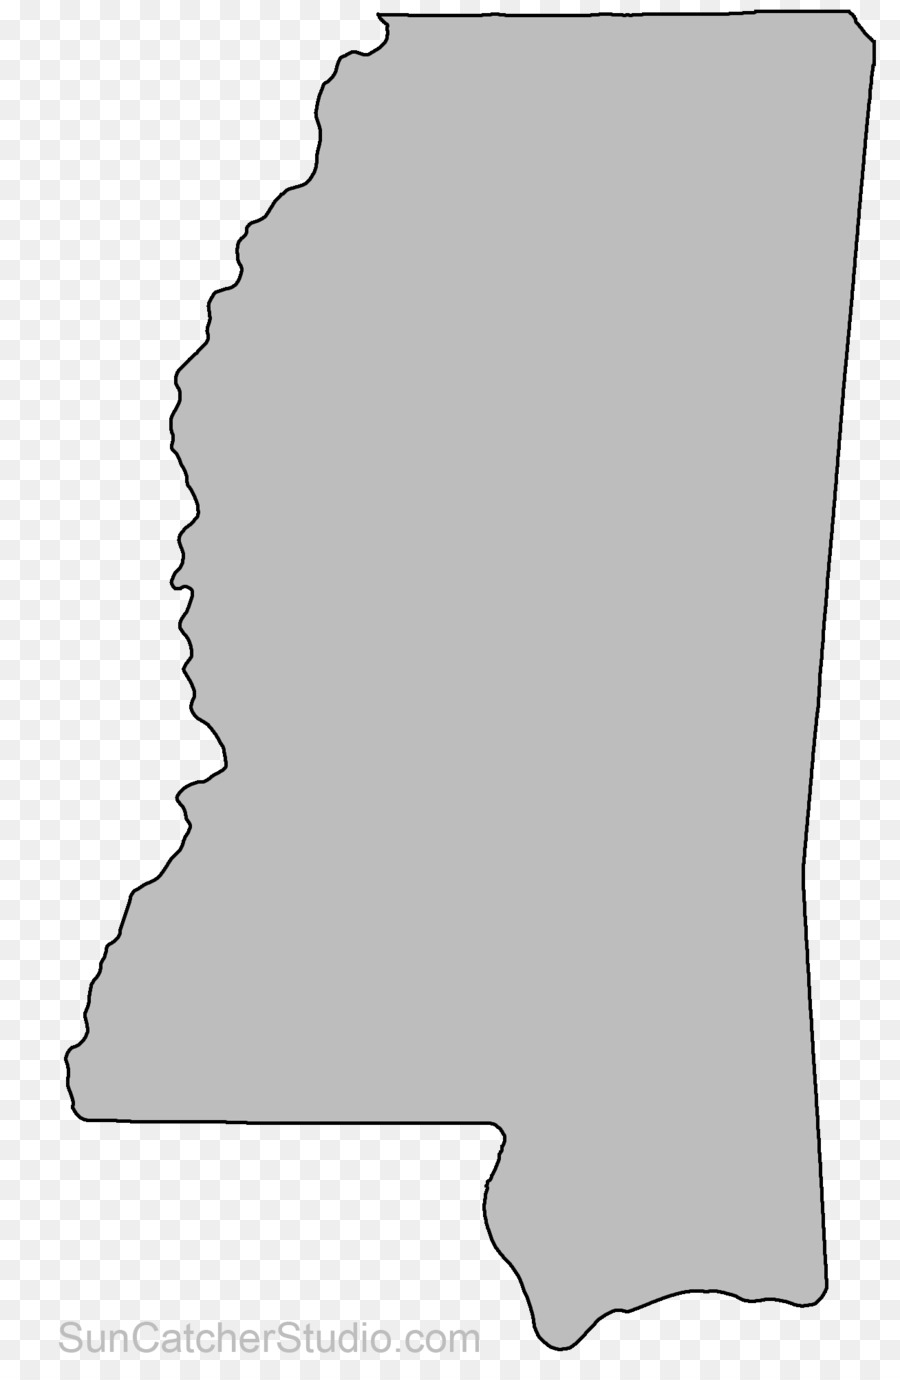 Mississippi Alabama Clip Art Arkansas Ohio Miss Vector Png